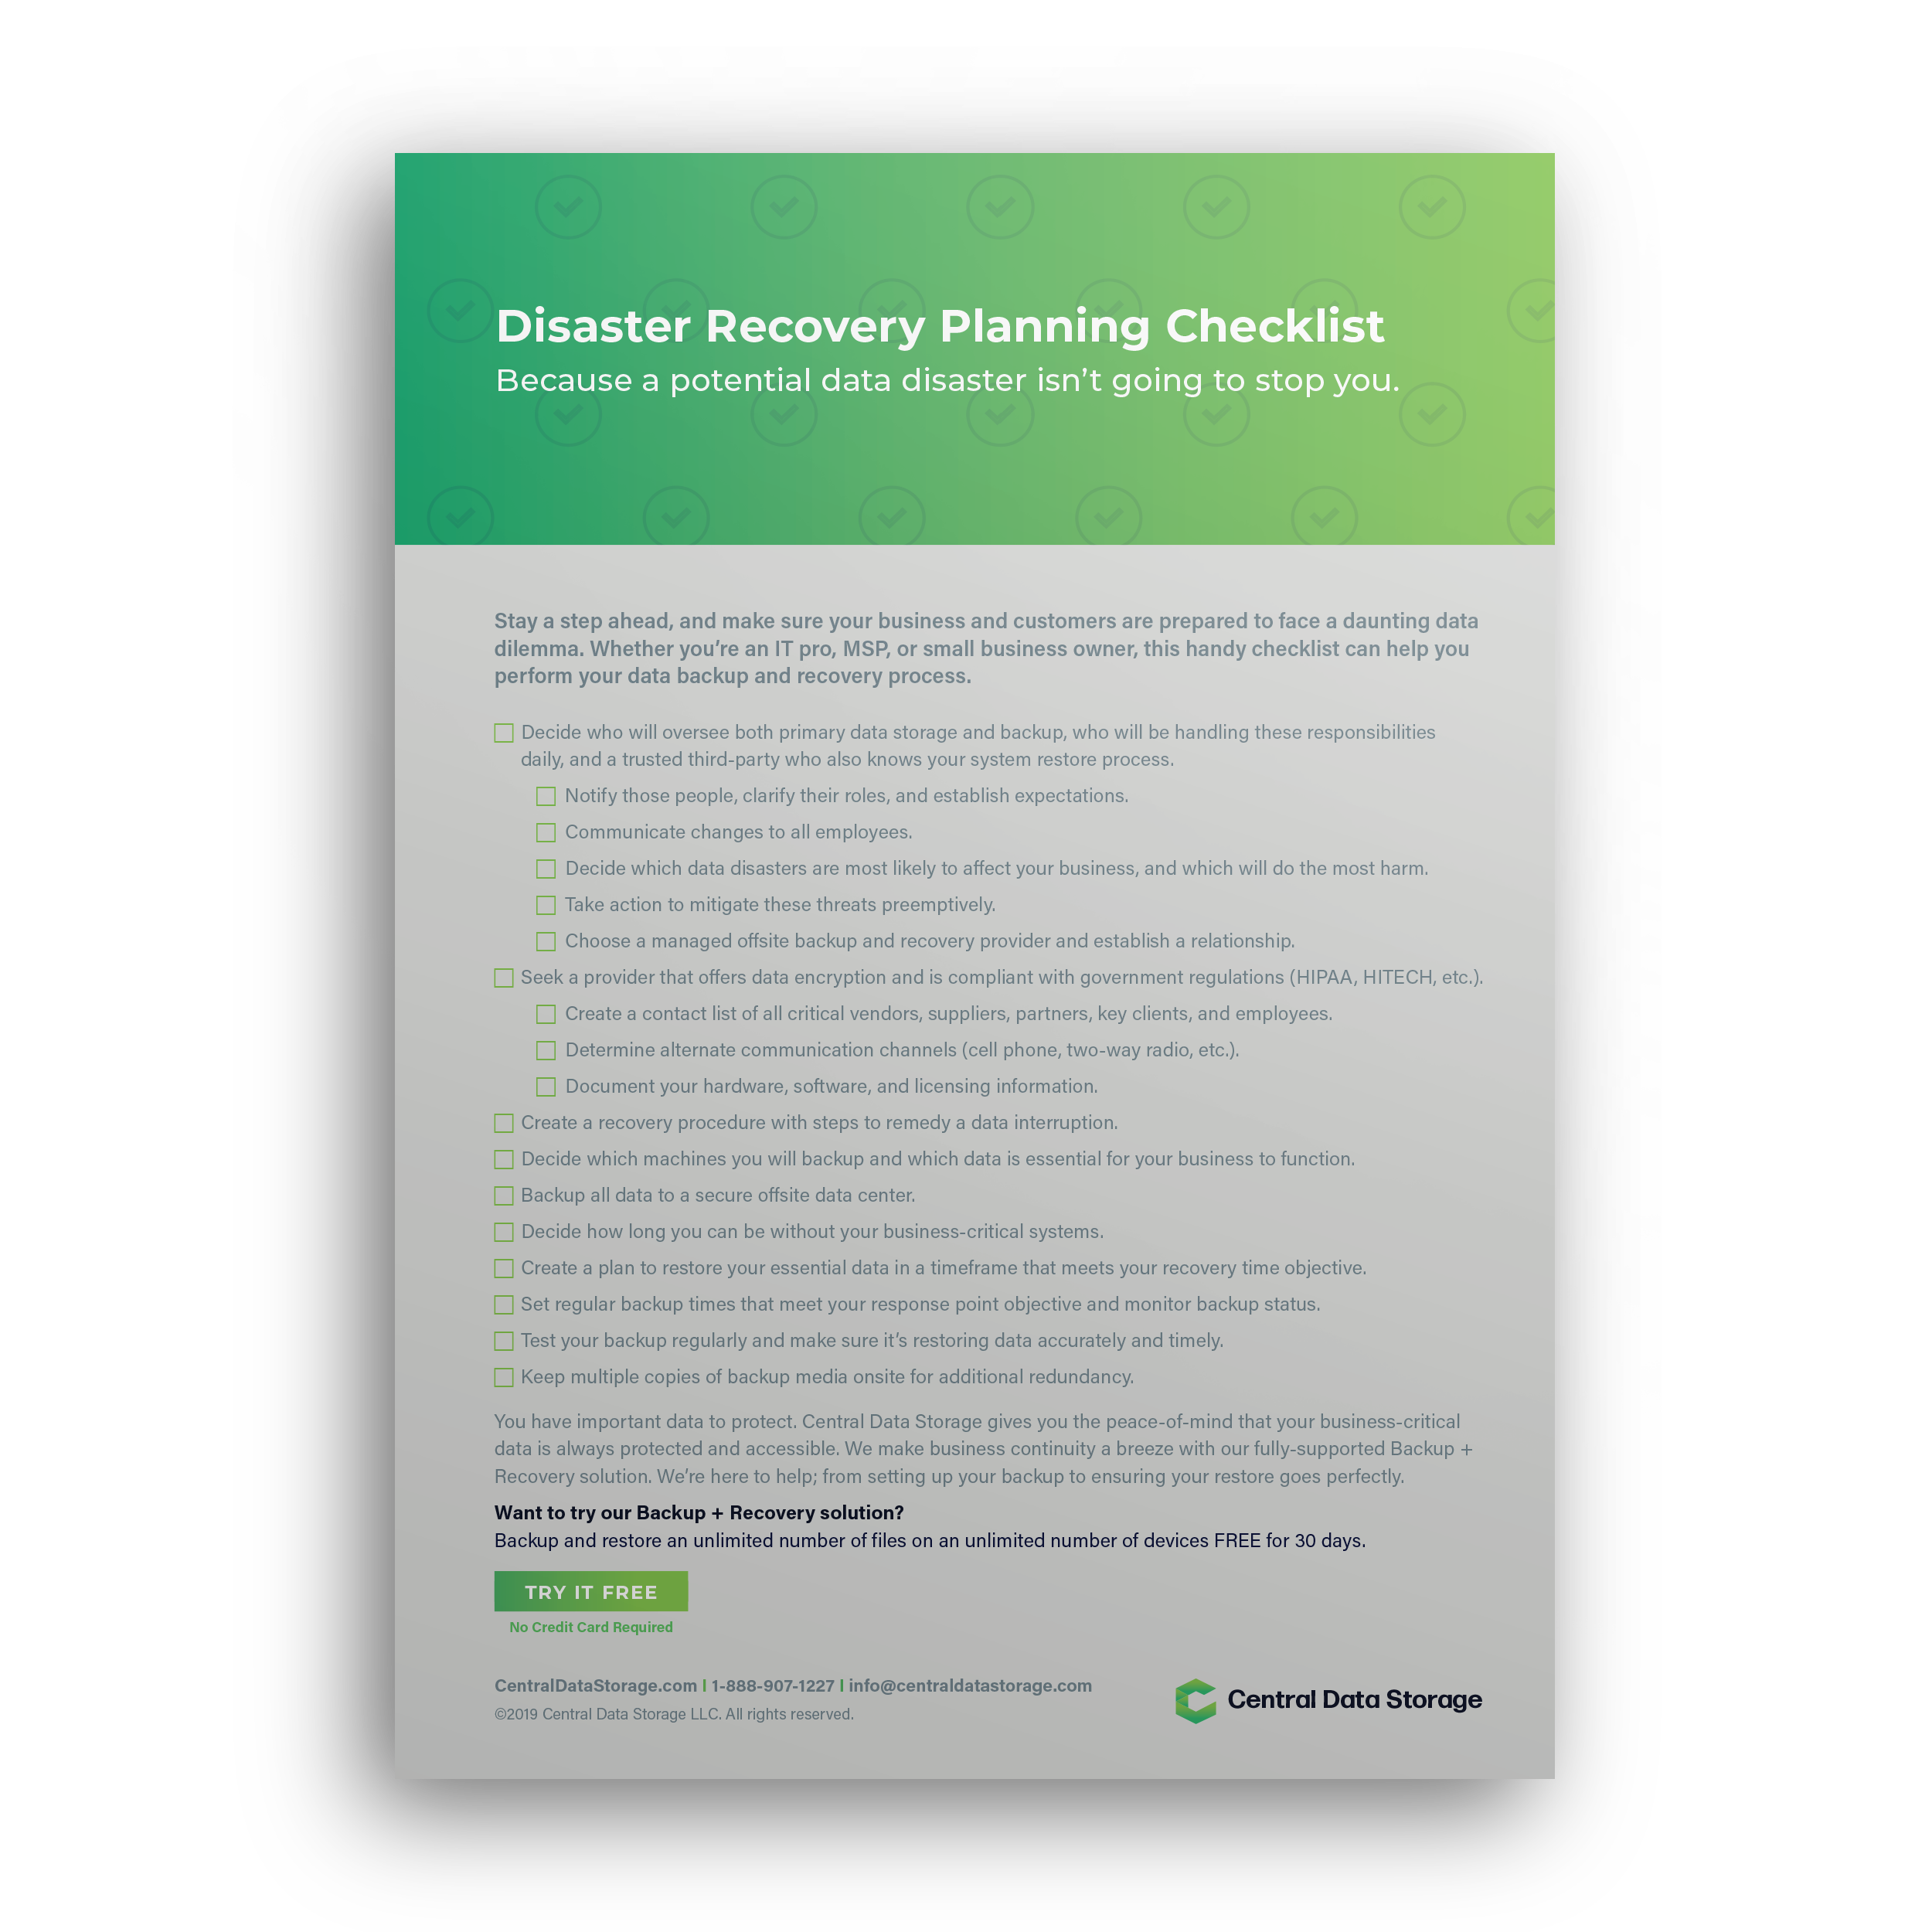 Disaster Recovery Planning Checklist